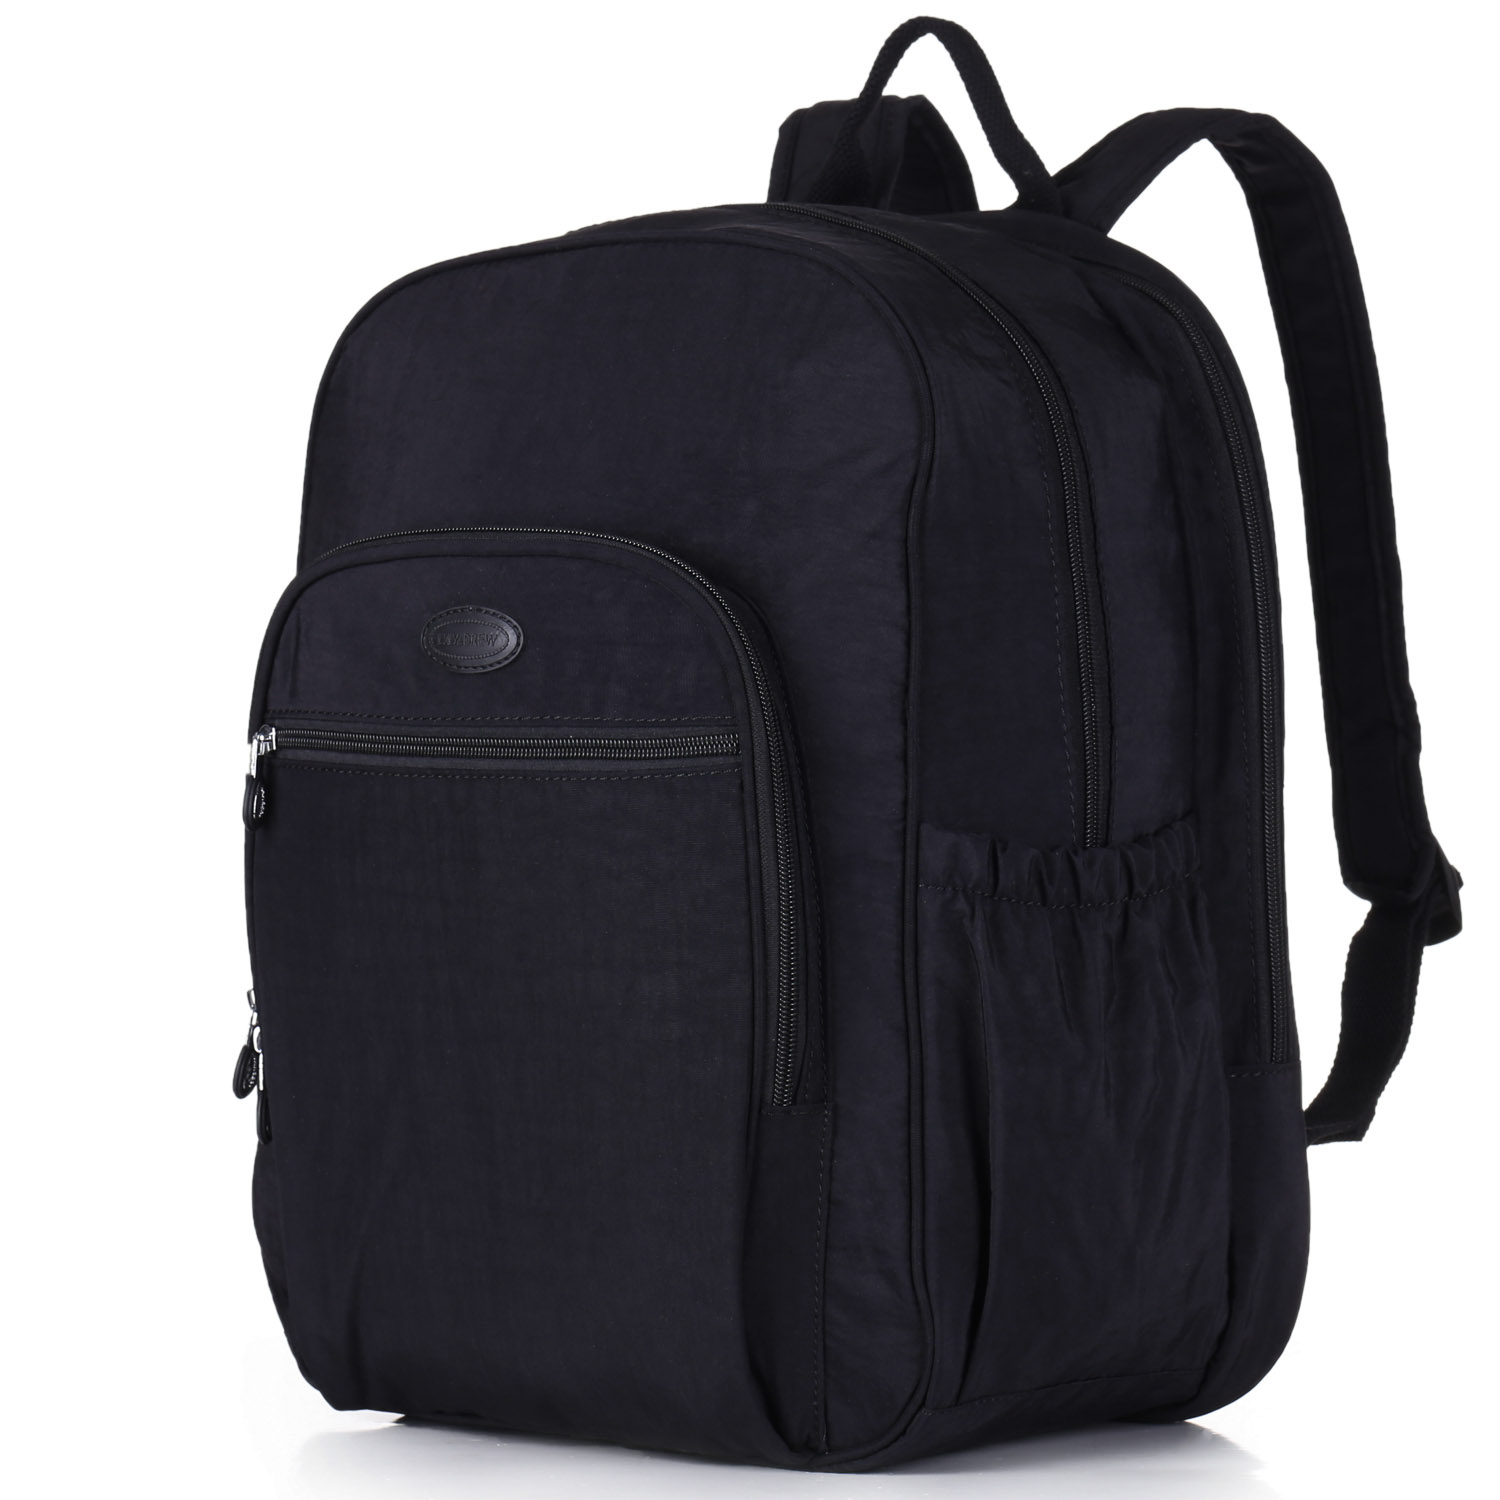 Nylon Casual Travel Daypack Backpack with 15.6 Inch Laptop Compartment bc4dd2c12